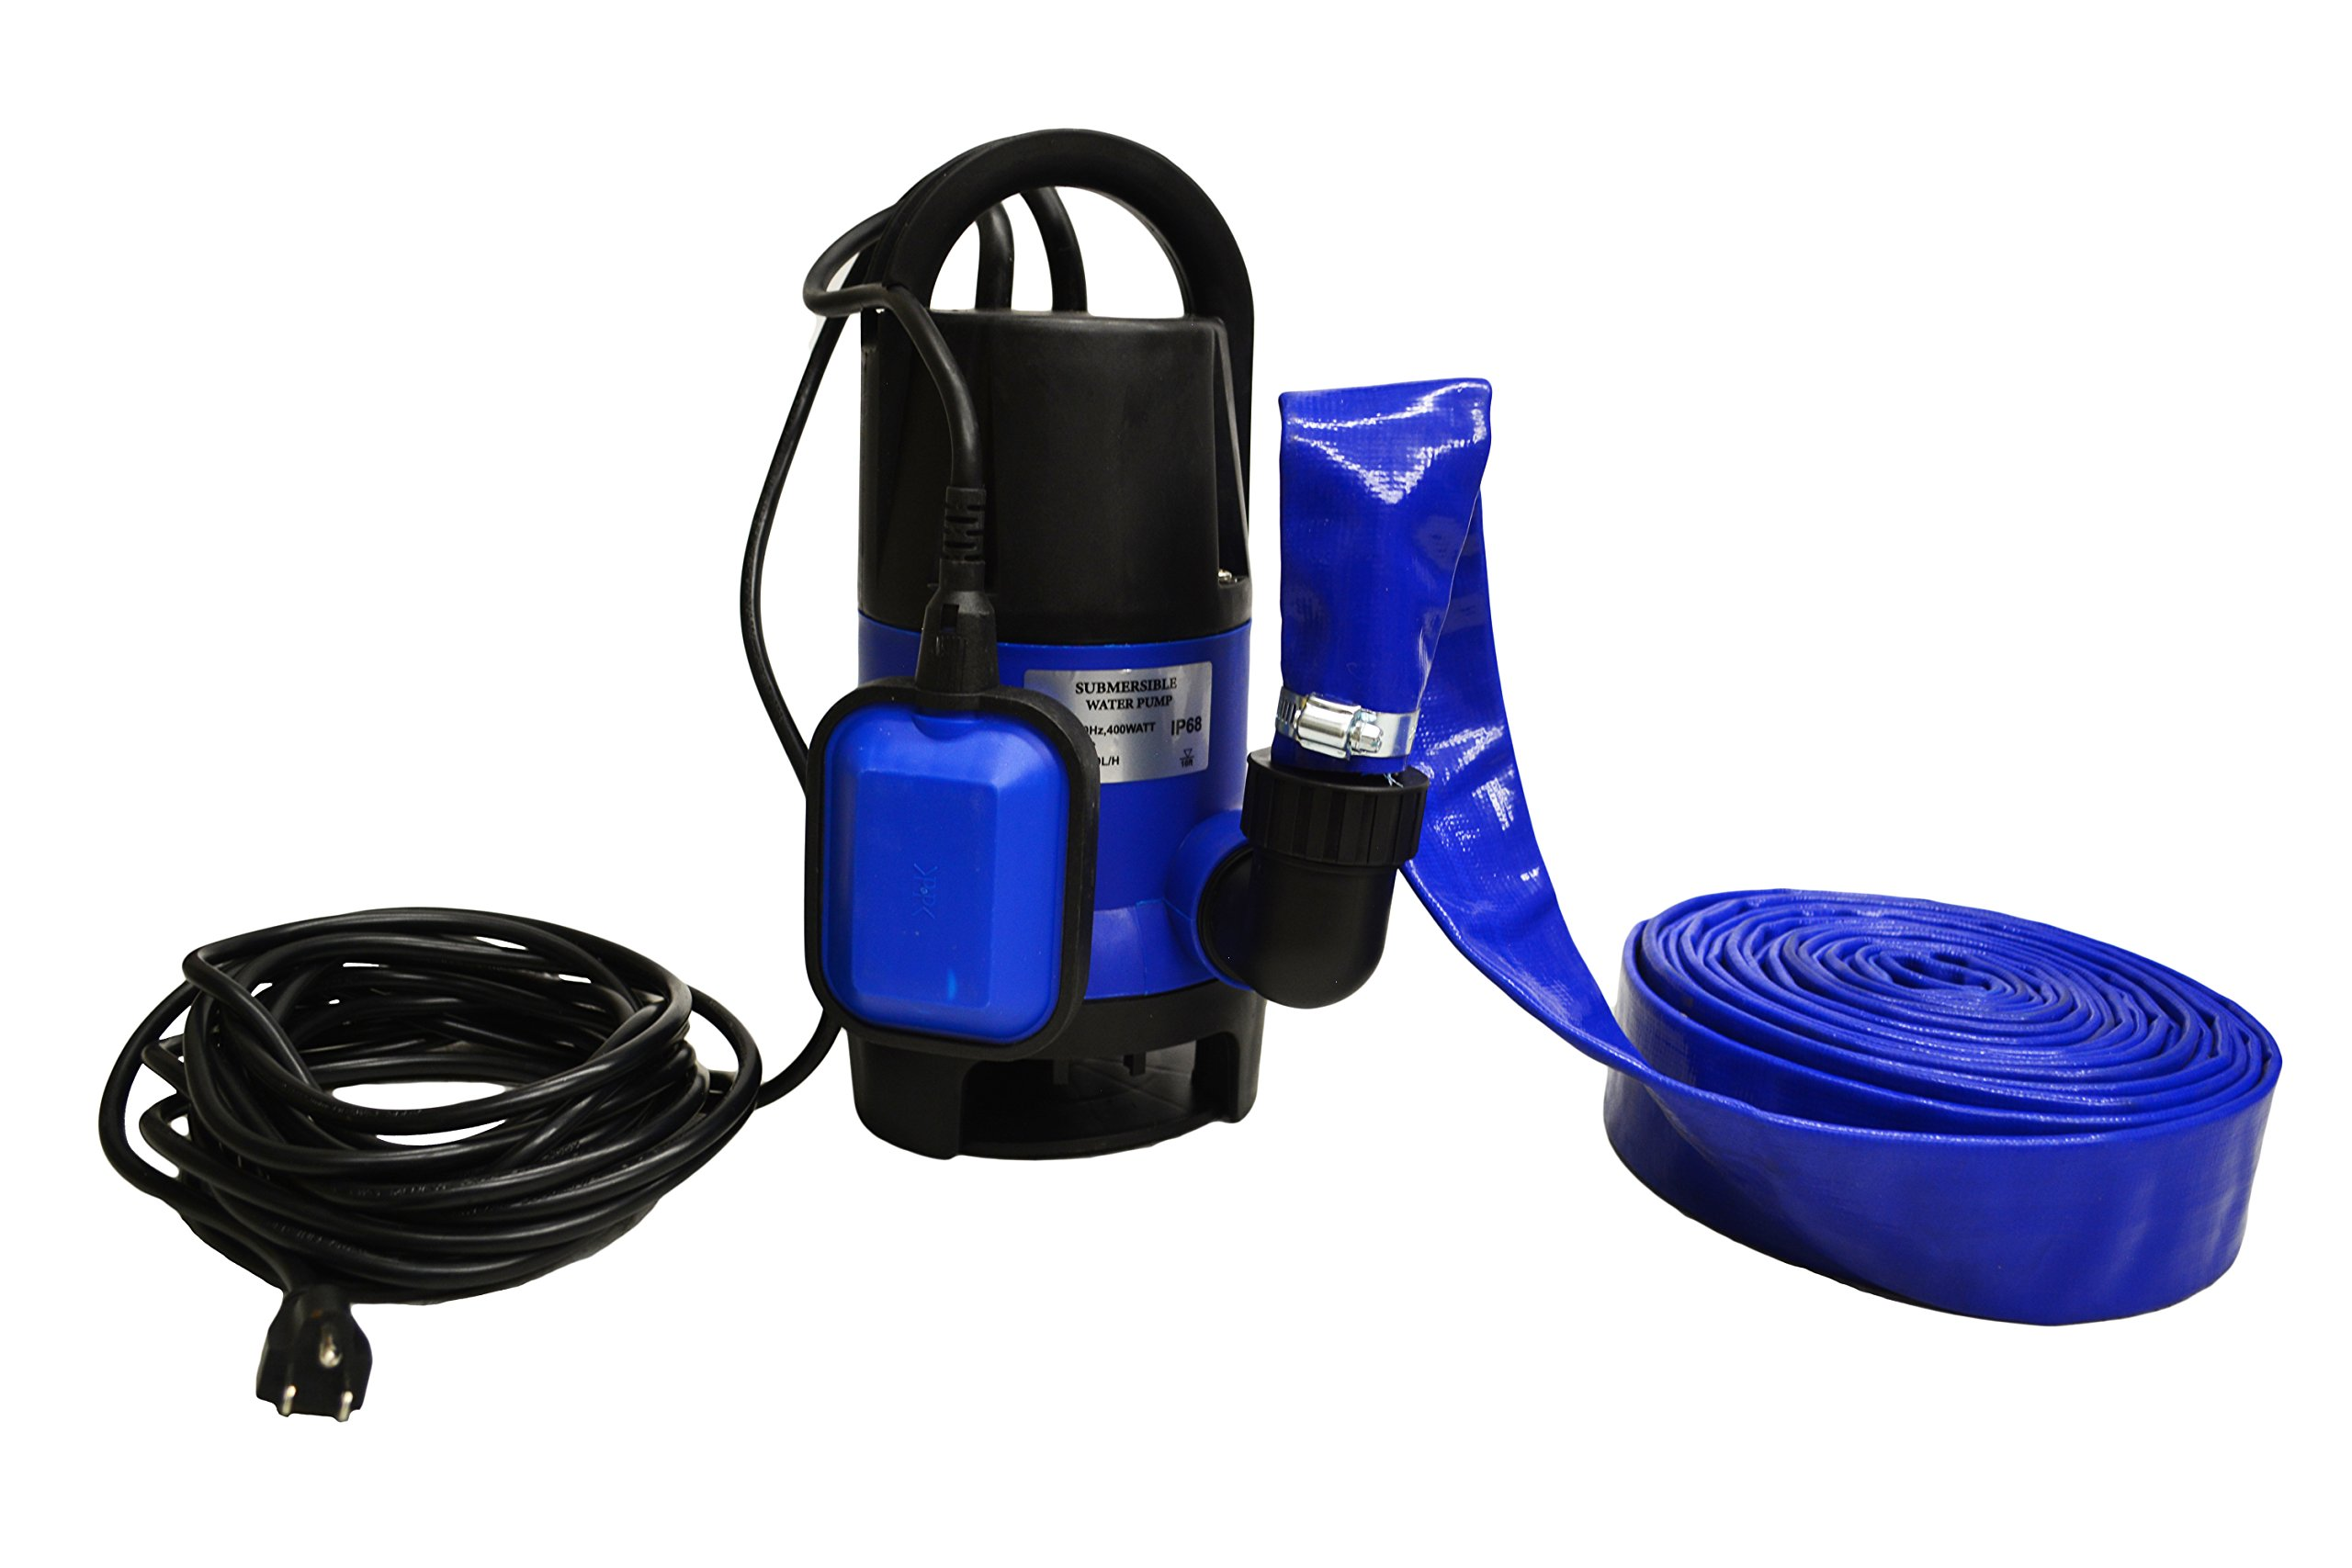 Hot Tub and Pool Submersible Drain Pump and 25' Water Hose (Up To 2,000 Gallons Per Hour) by EZ Travel Collection